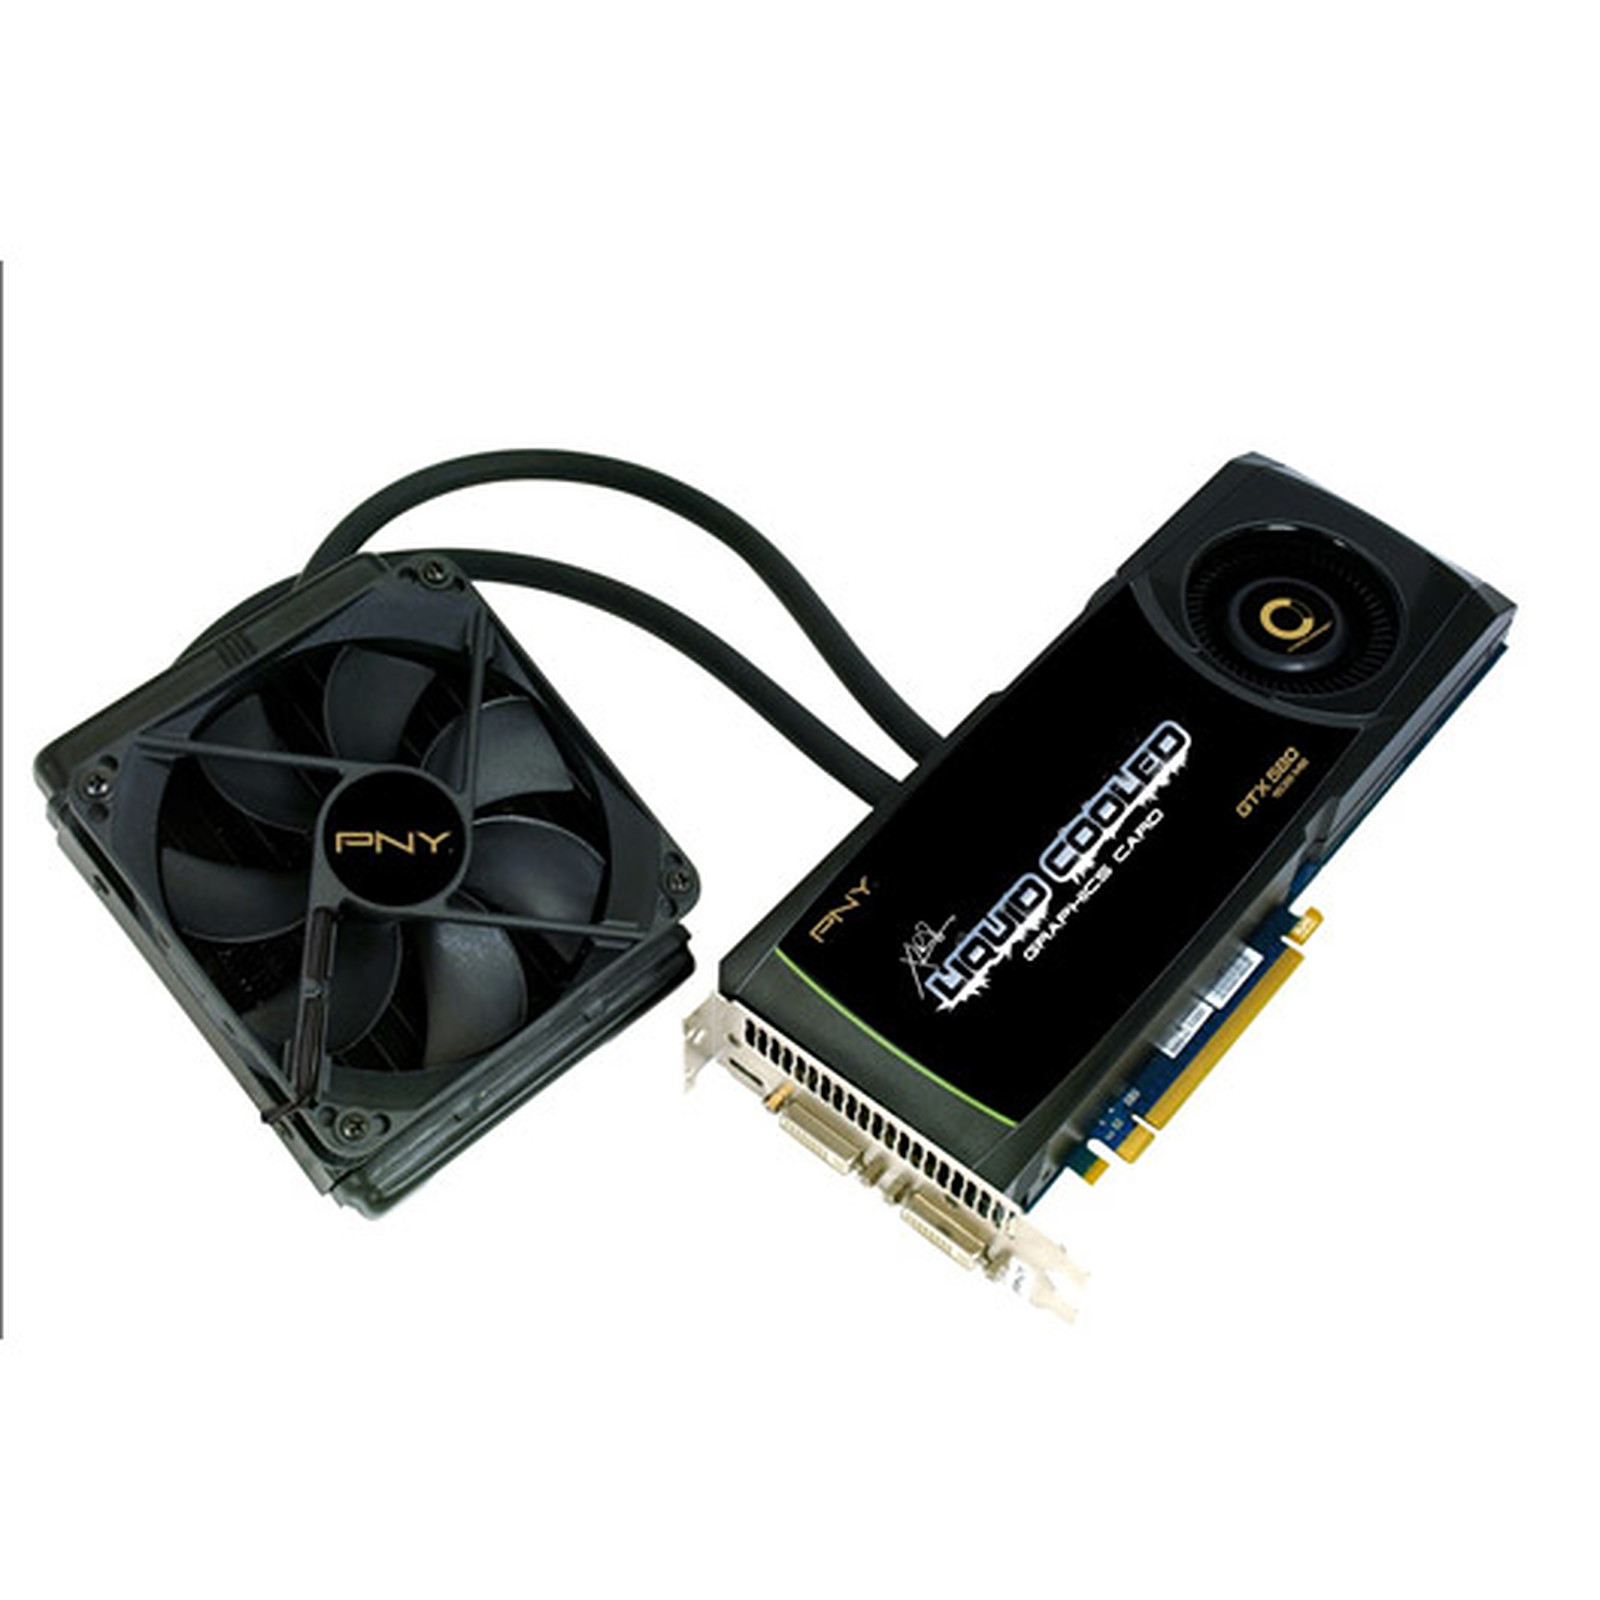 PNY GeForce GTX 580 XLR8 Liquid Cooled 1536 MB